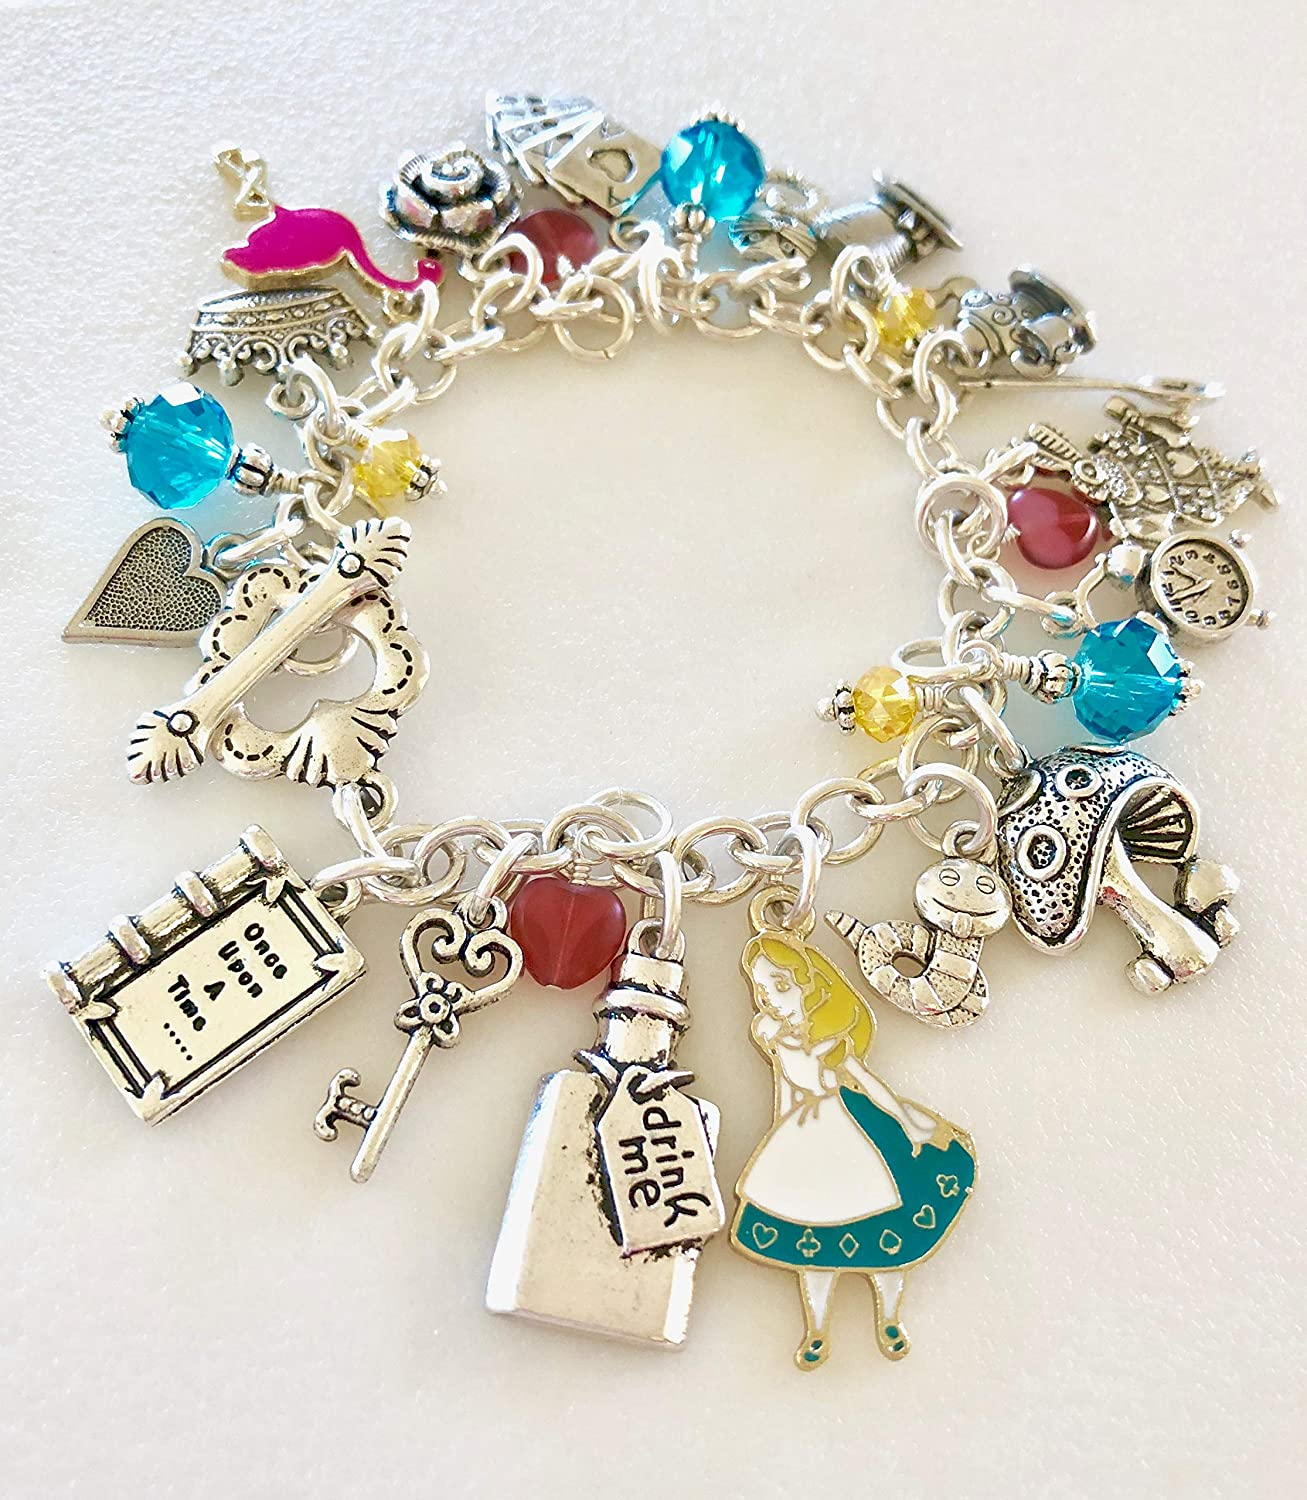 Pack of 5 Gold Tone Alice in Wonderland Charms Crown Key Drink Me FREE CHAIN